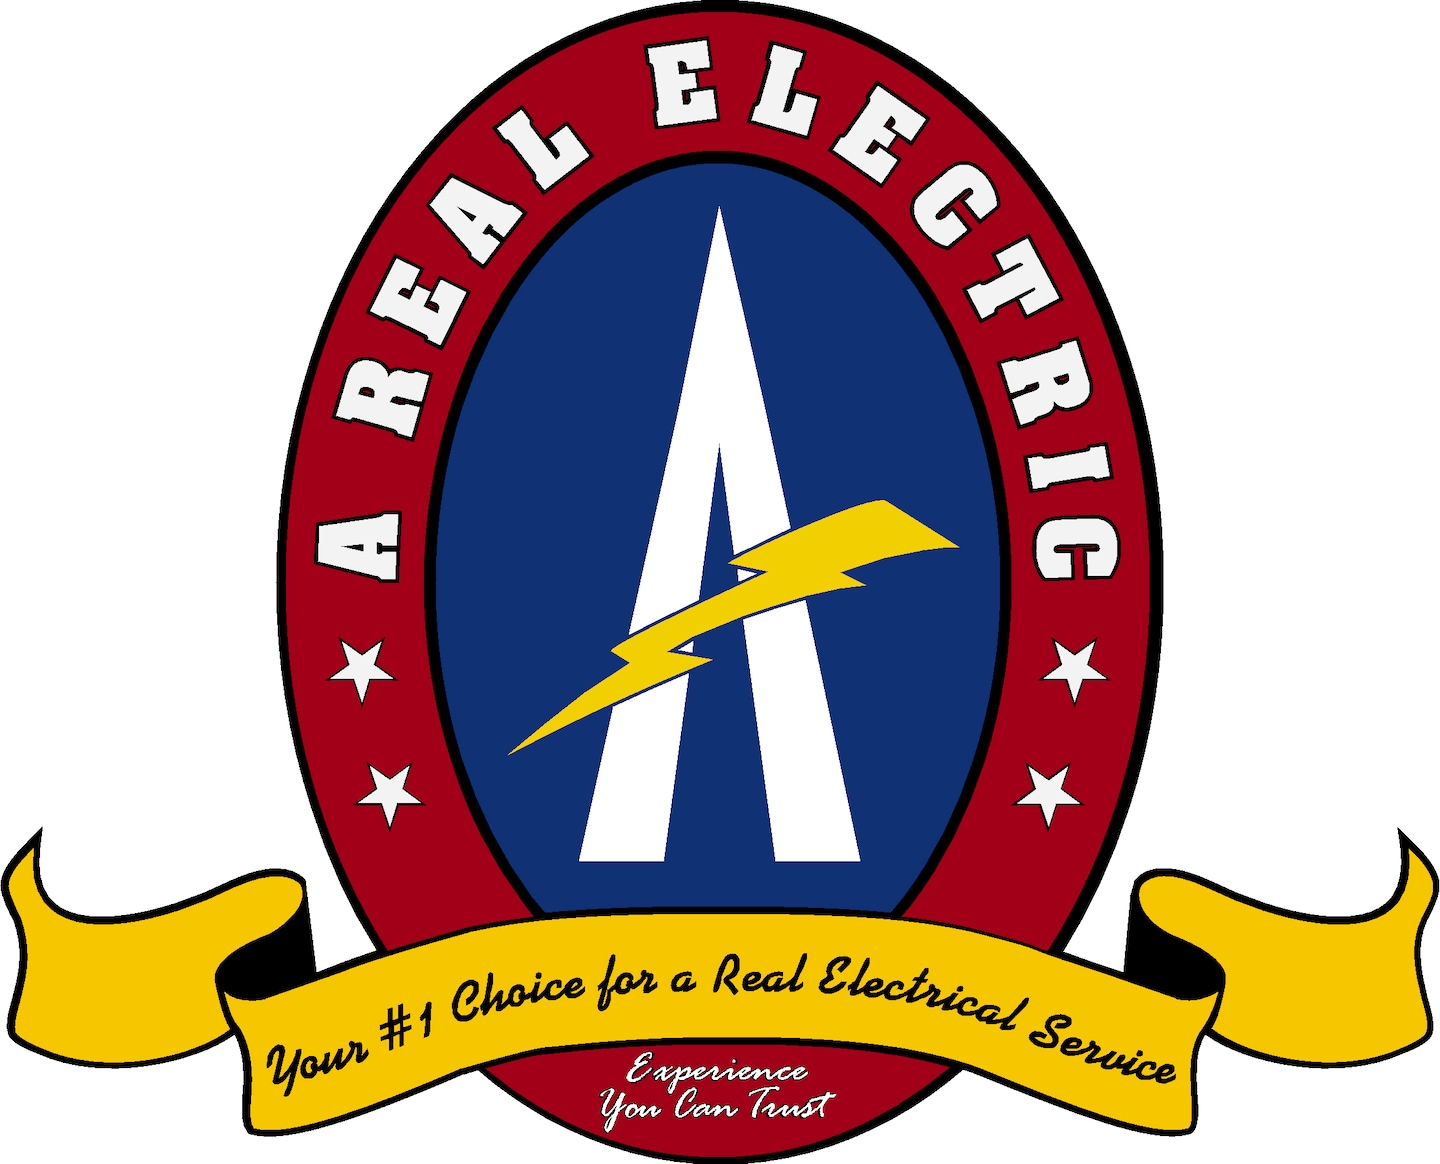 A Real Electric Inc